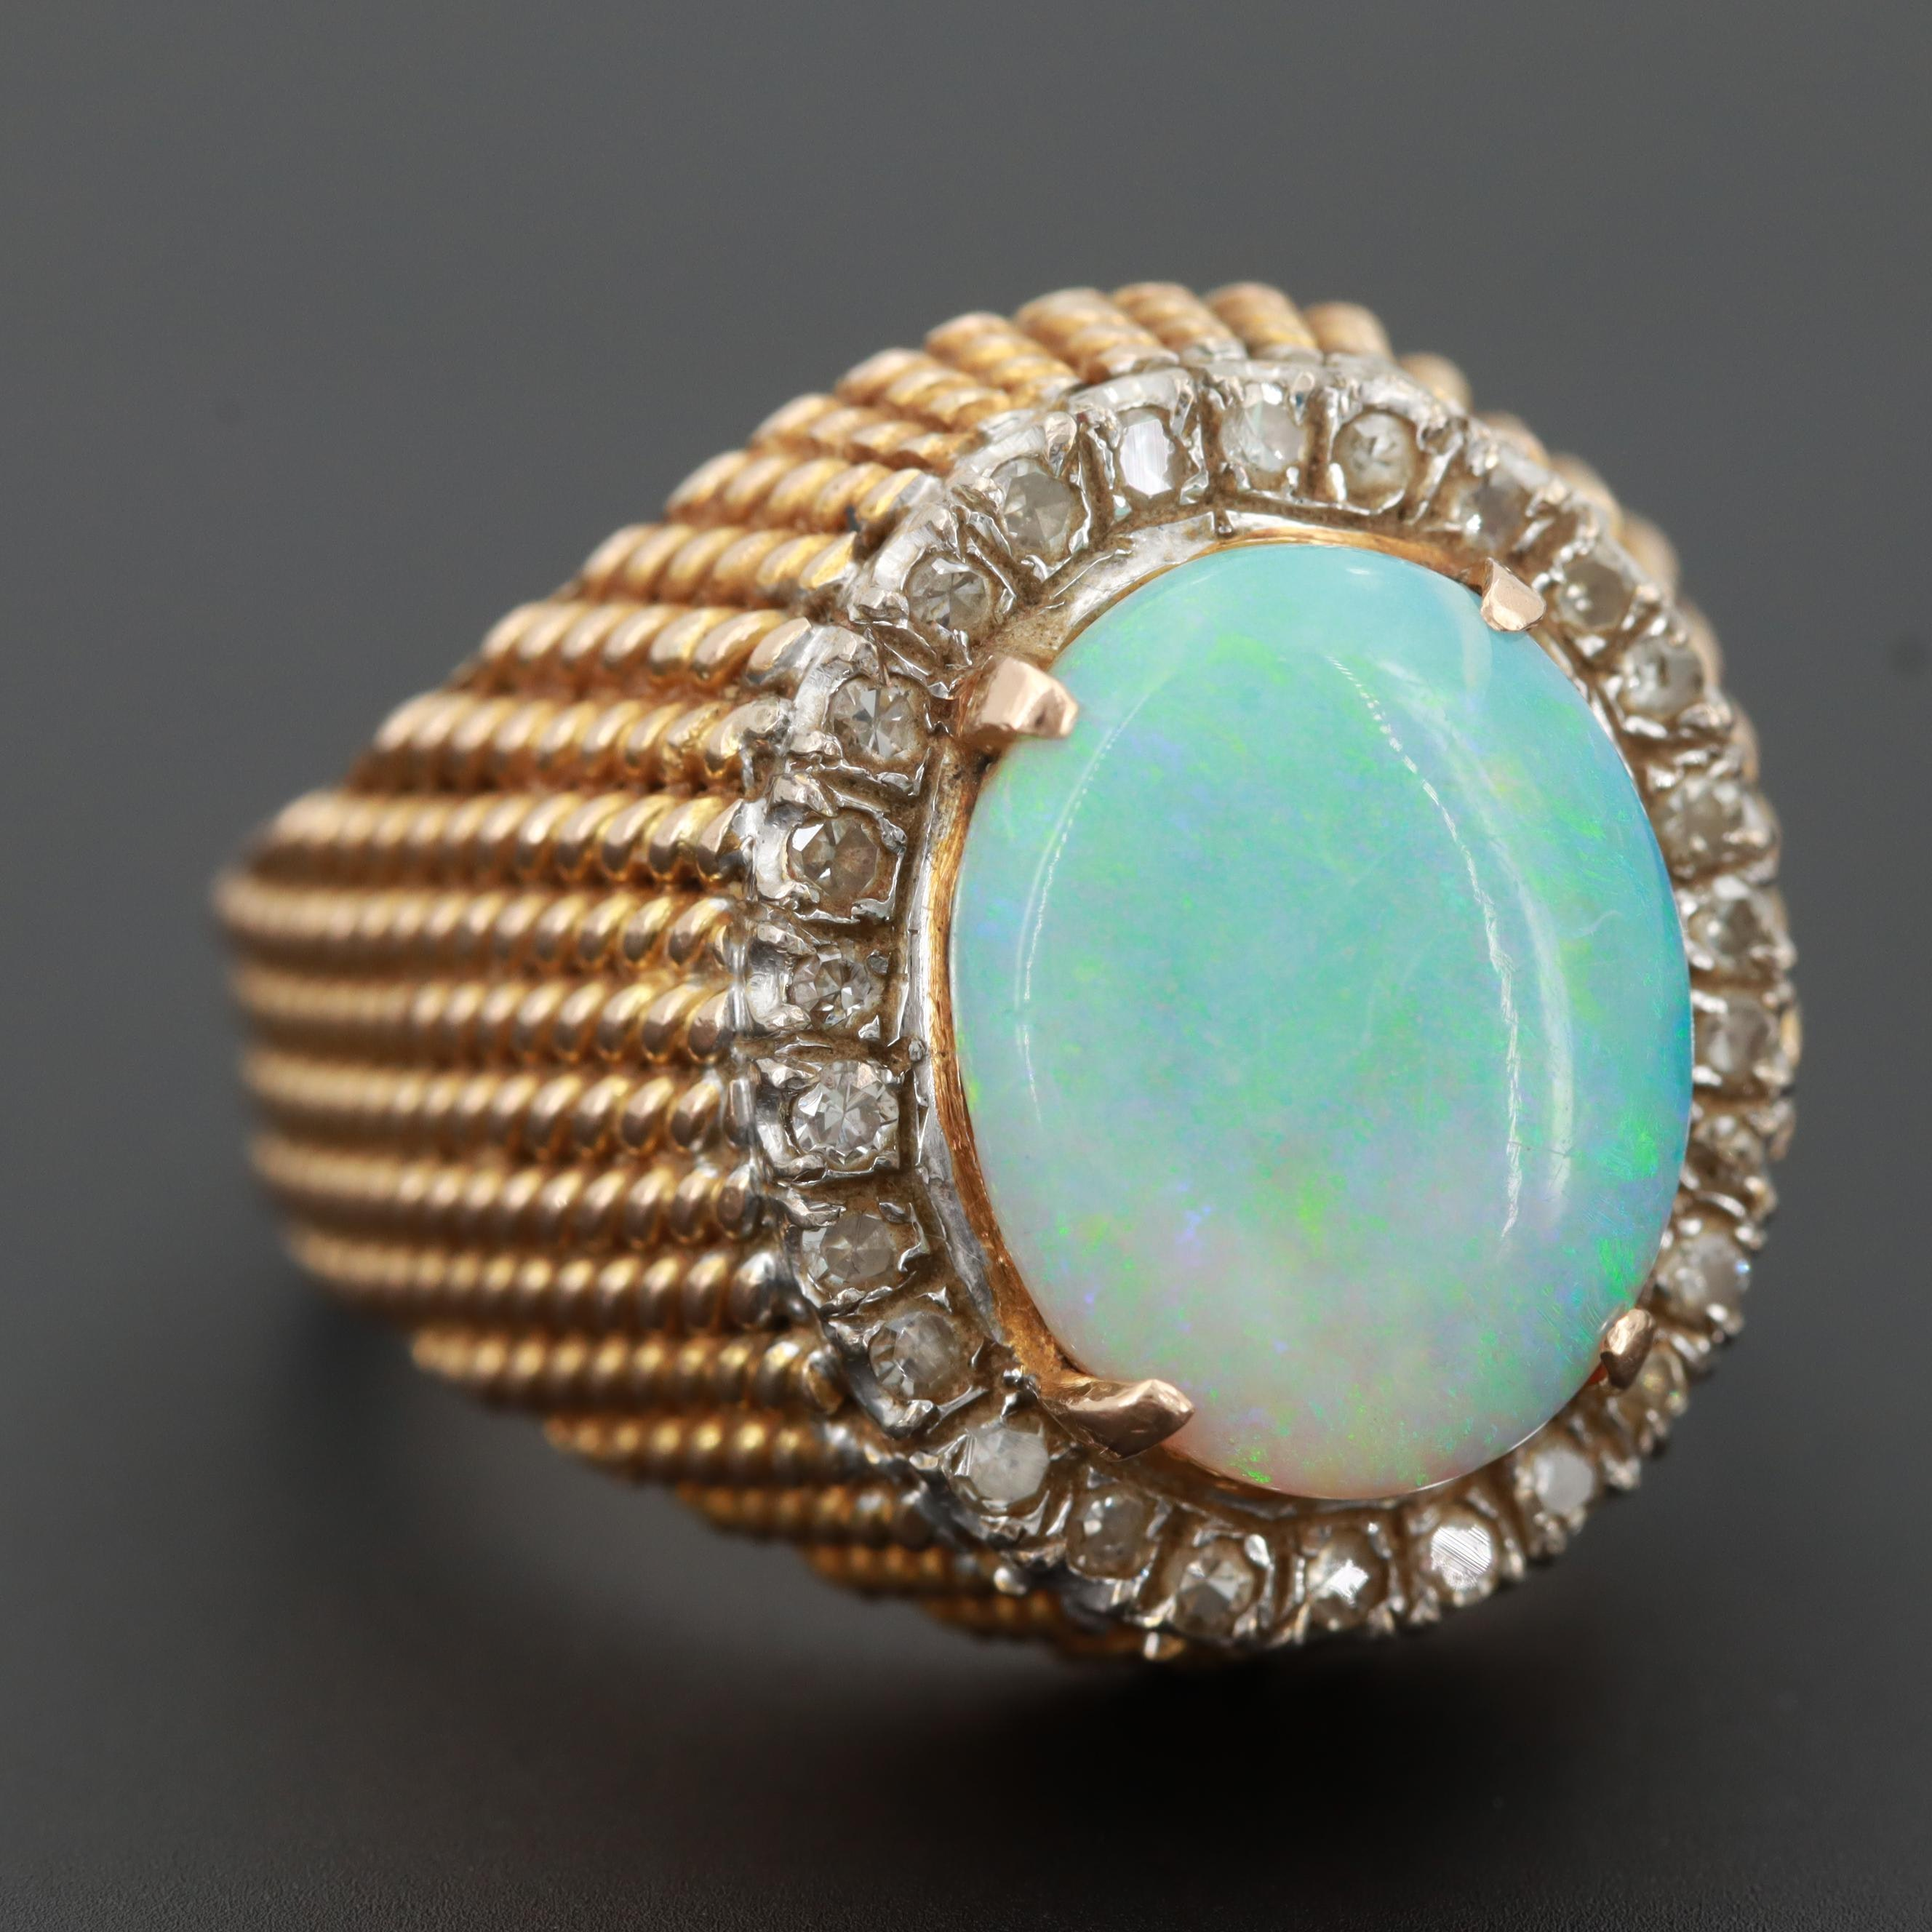 14K Yellow Gold Opal Ring with Diamond Halo